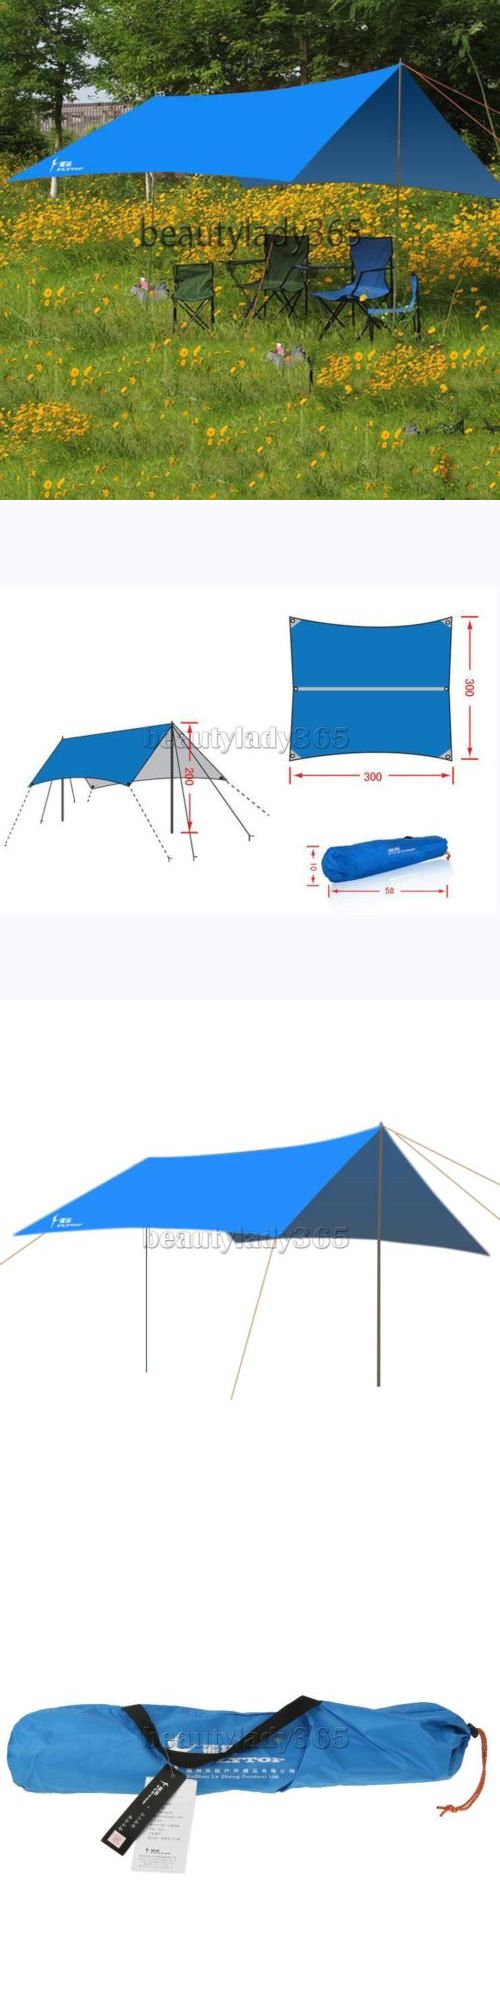 Other Tents and Canopies 179019: Waterproof Outdoor Camping Fishing Canopy Tarp Tent Sun Rain Shelter W/Poles BUY IT NOW ONLY: $32.35